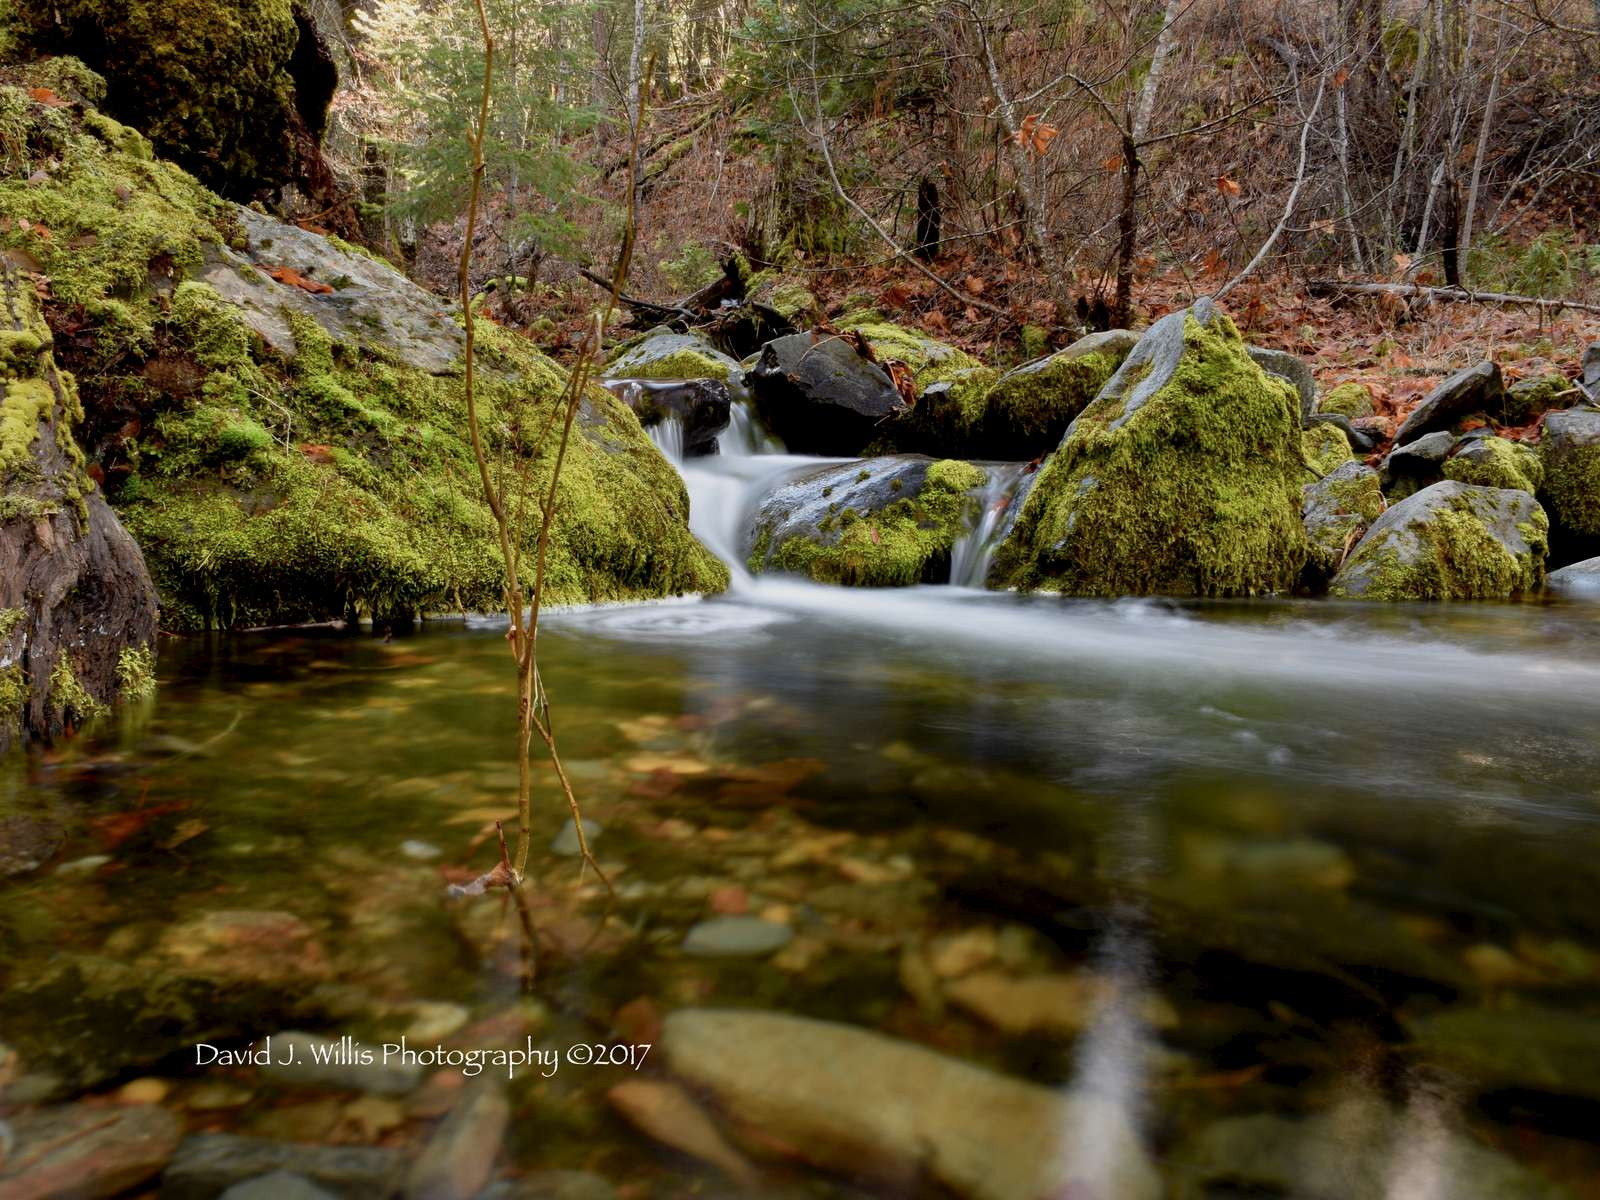 Maple Pool at Lovey's Gorge, Undisclosed Location, Plumas County